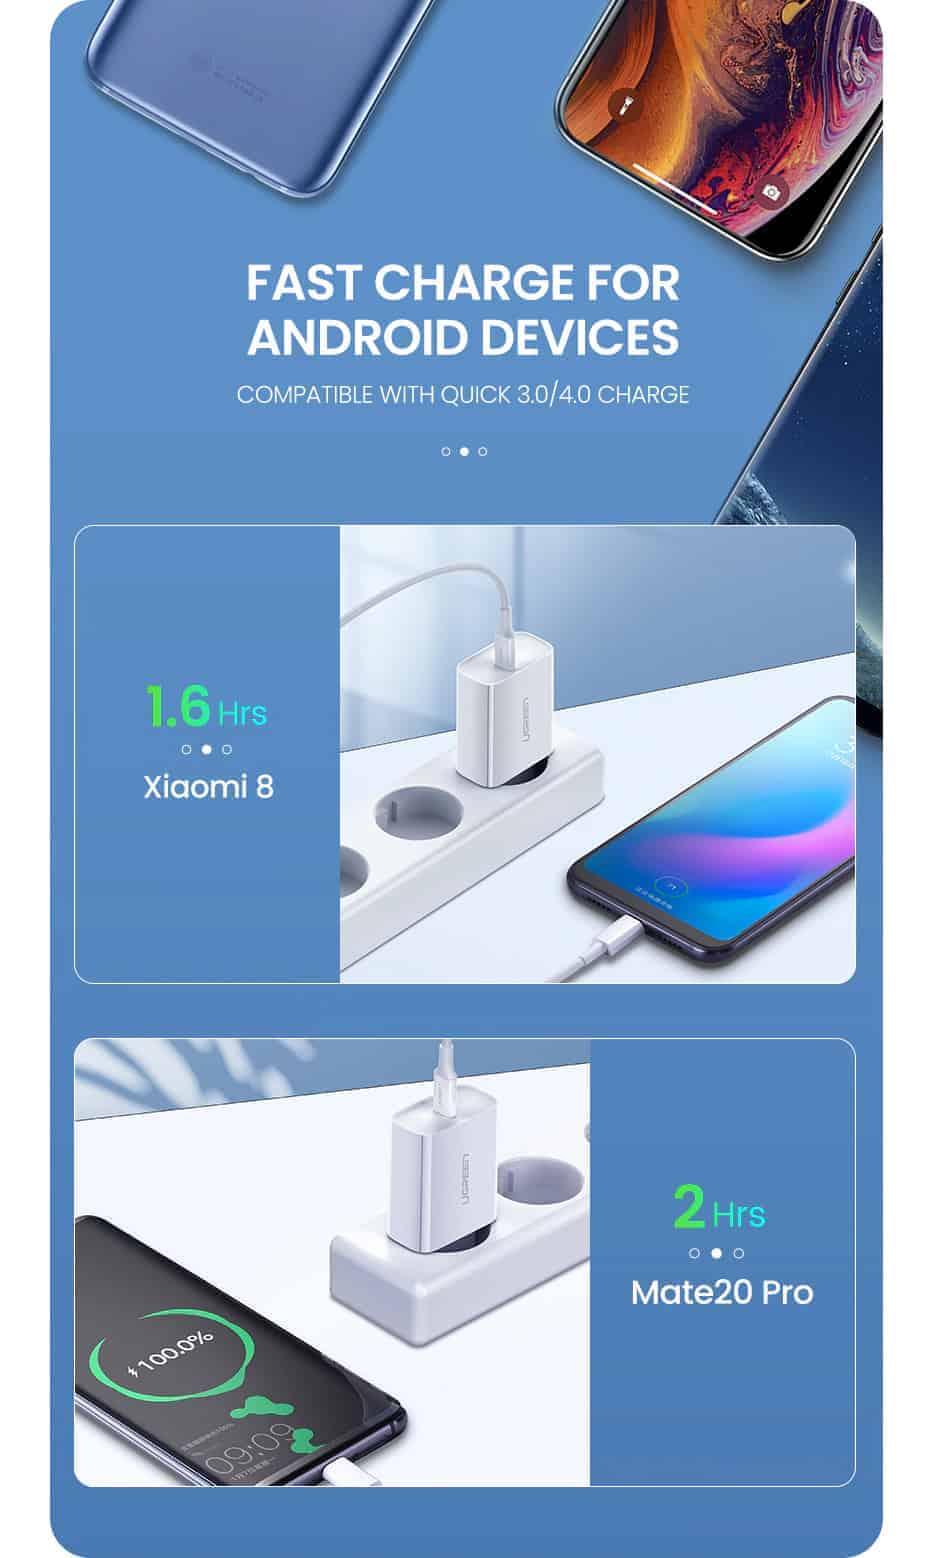 18W USB-C Power Adapter Ugreen for iPhone 11 11 PRo X Xs 8 - Fast charge for Android devices